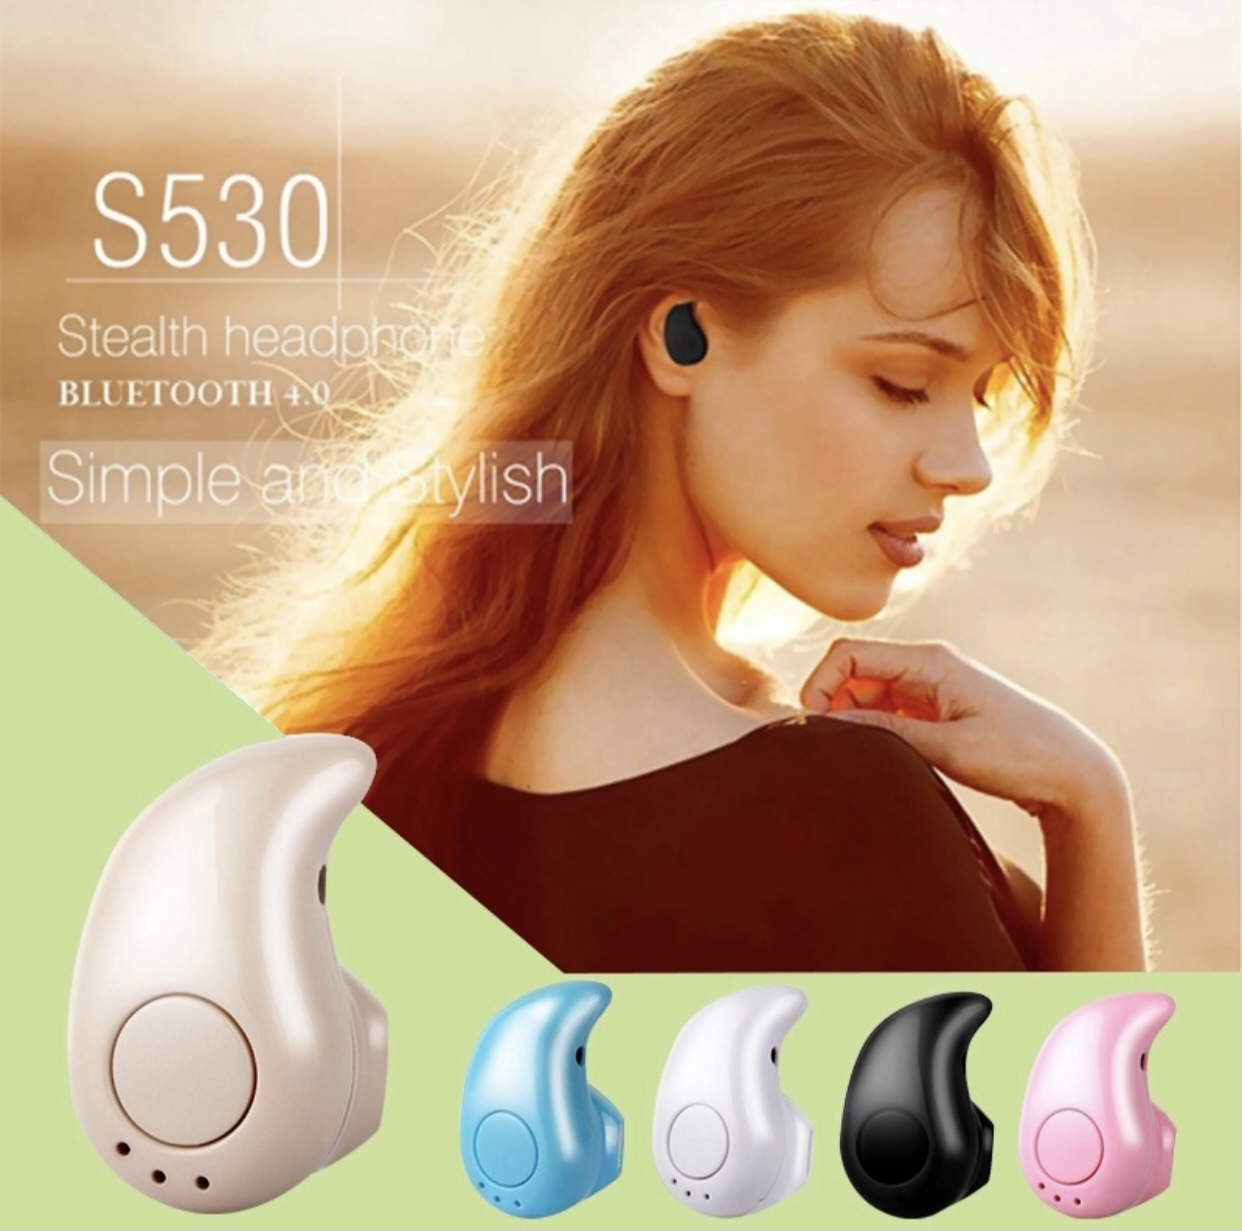 S530 Wireless Bluetooth Headphone Bt Earphone Sports Earbud With Mic Mini Invisible Sport Stereo V4.0 Stereo Wireless Headset For All Smart Phones